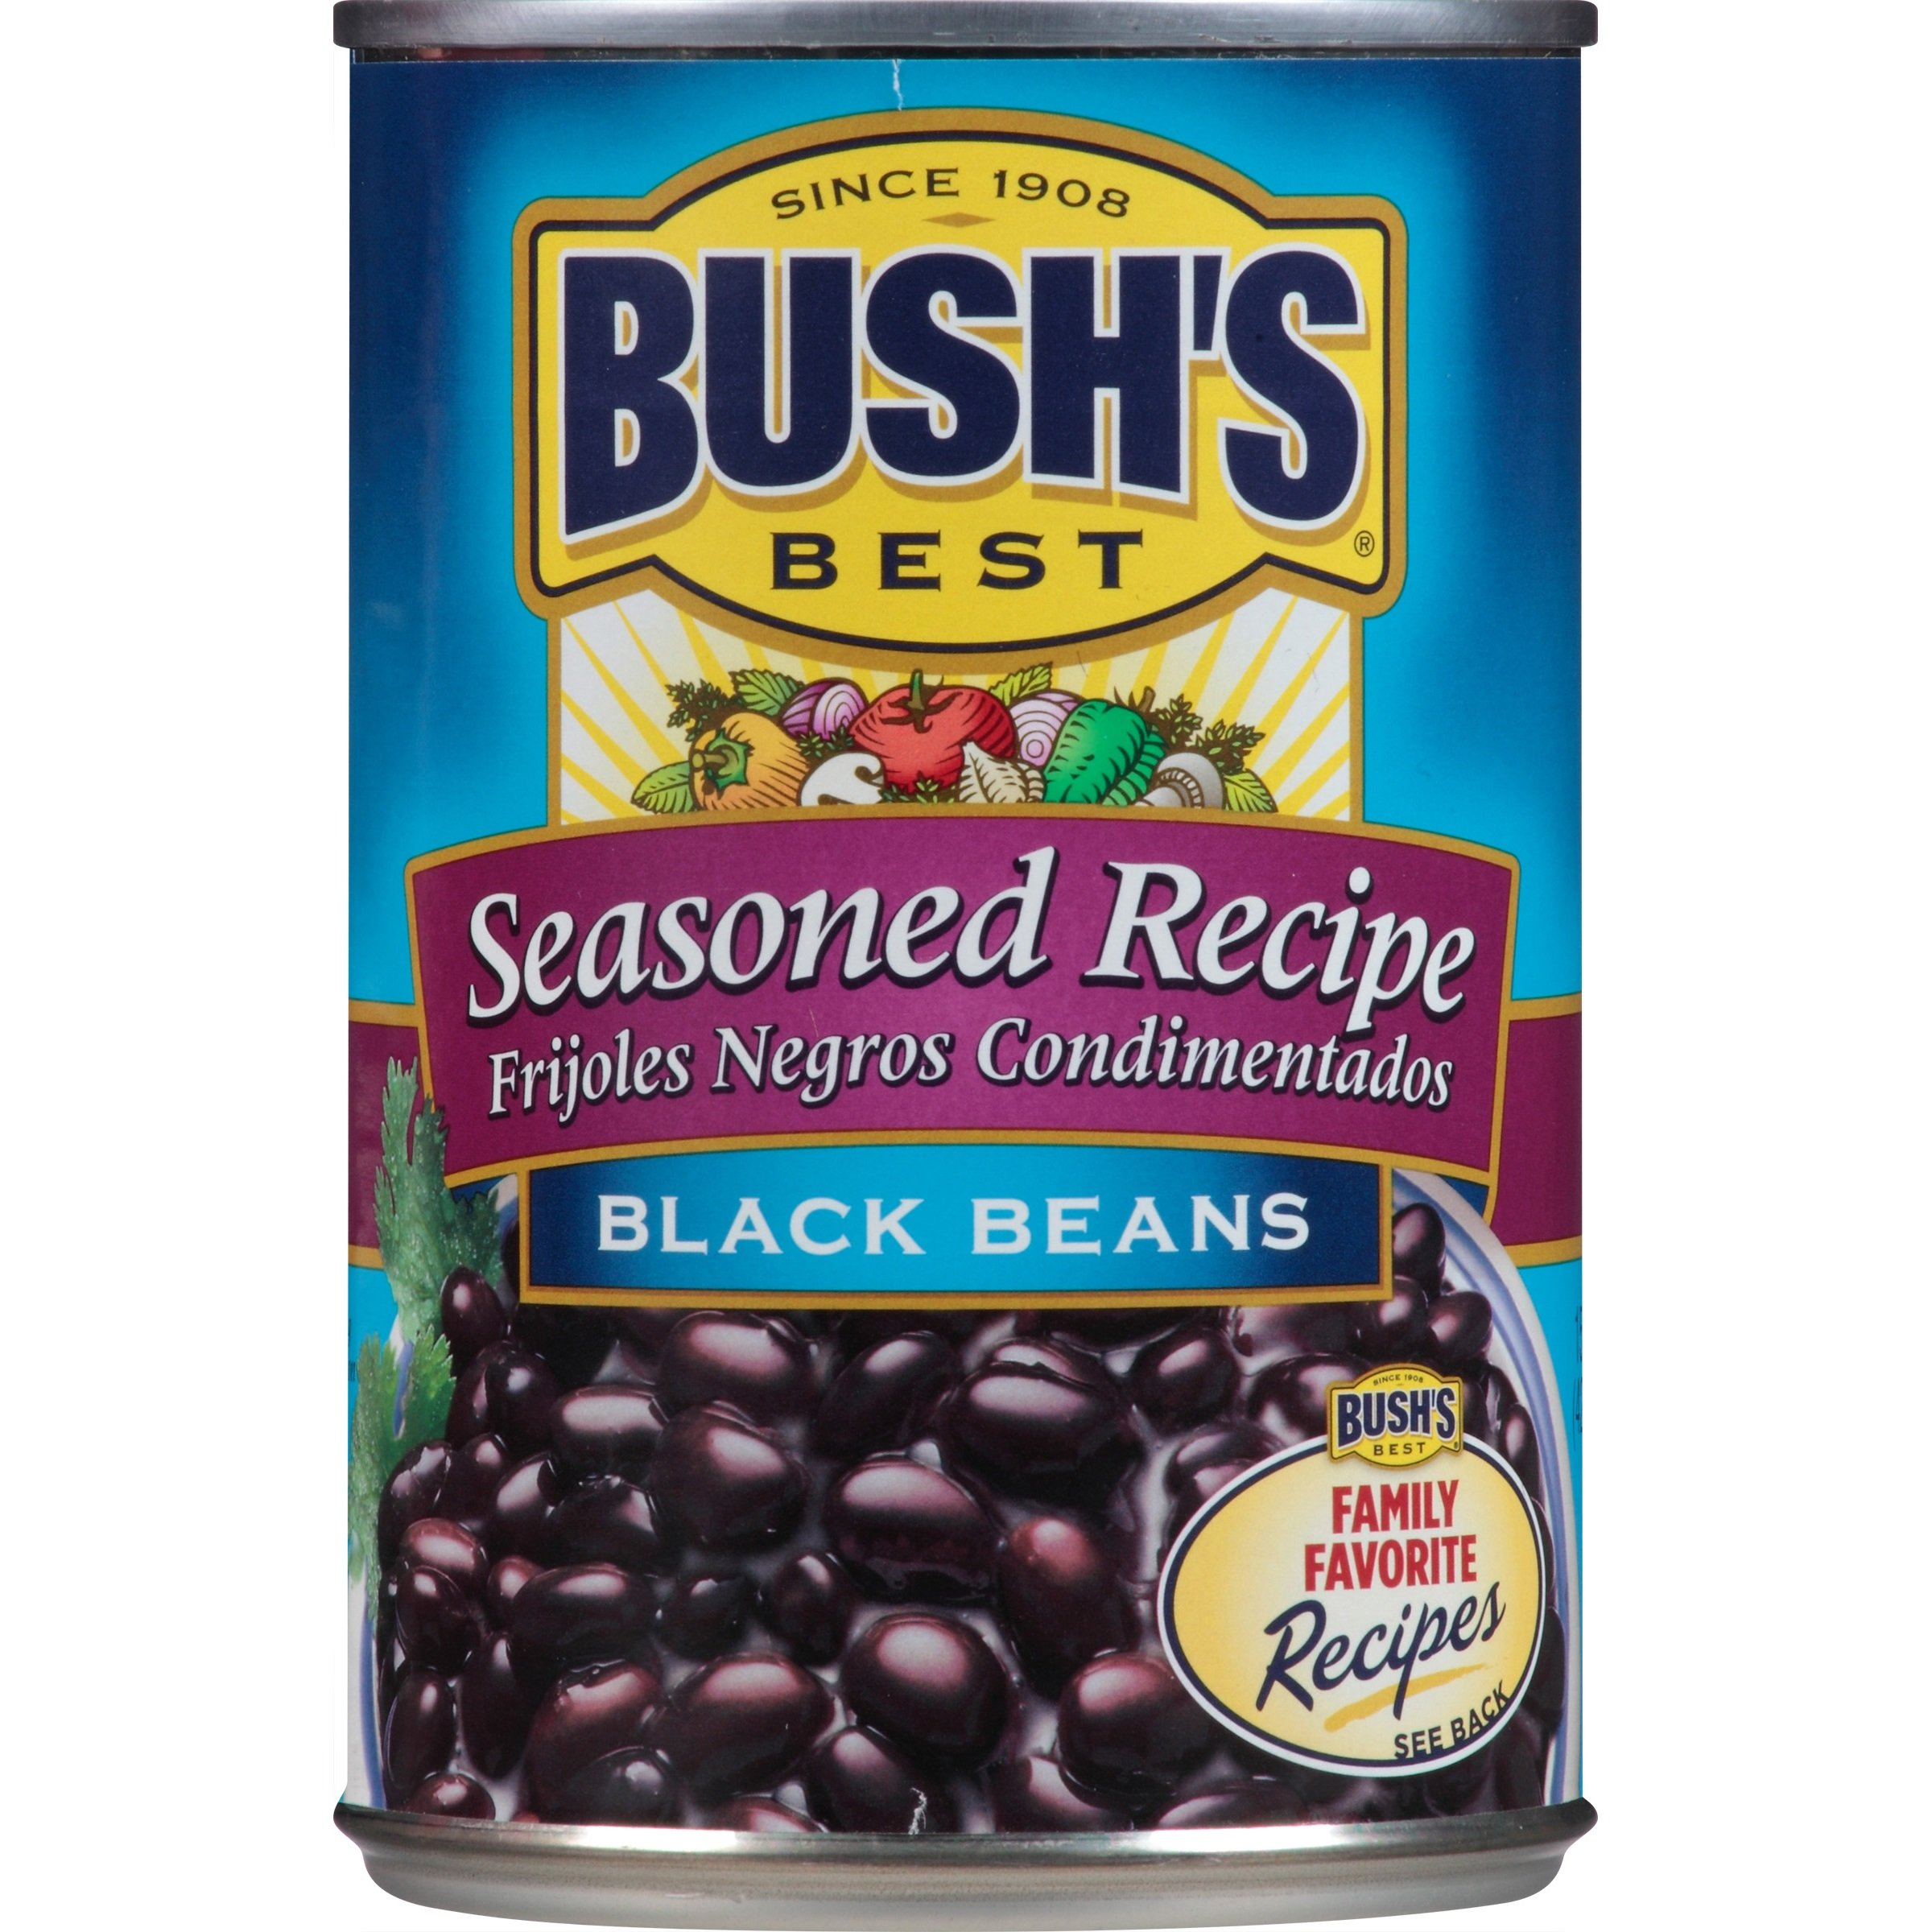 Bush's Best Seasoned Black Beans, 15 oz (12 cans)